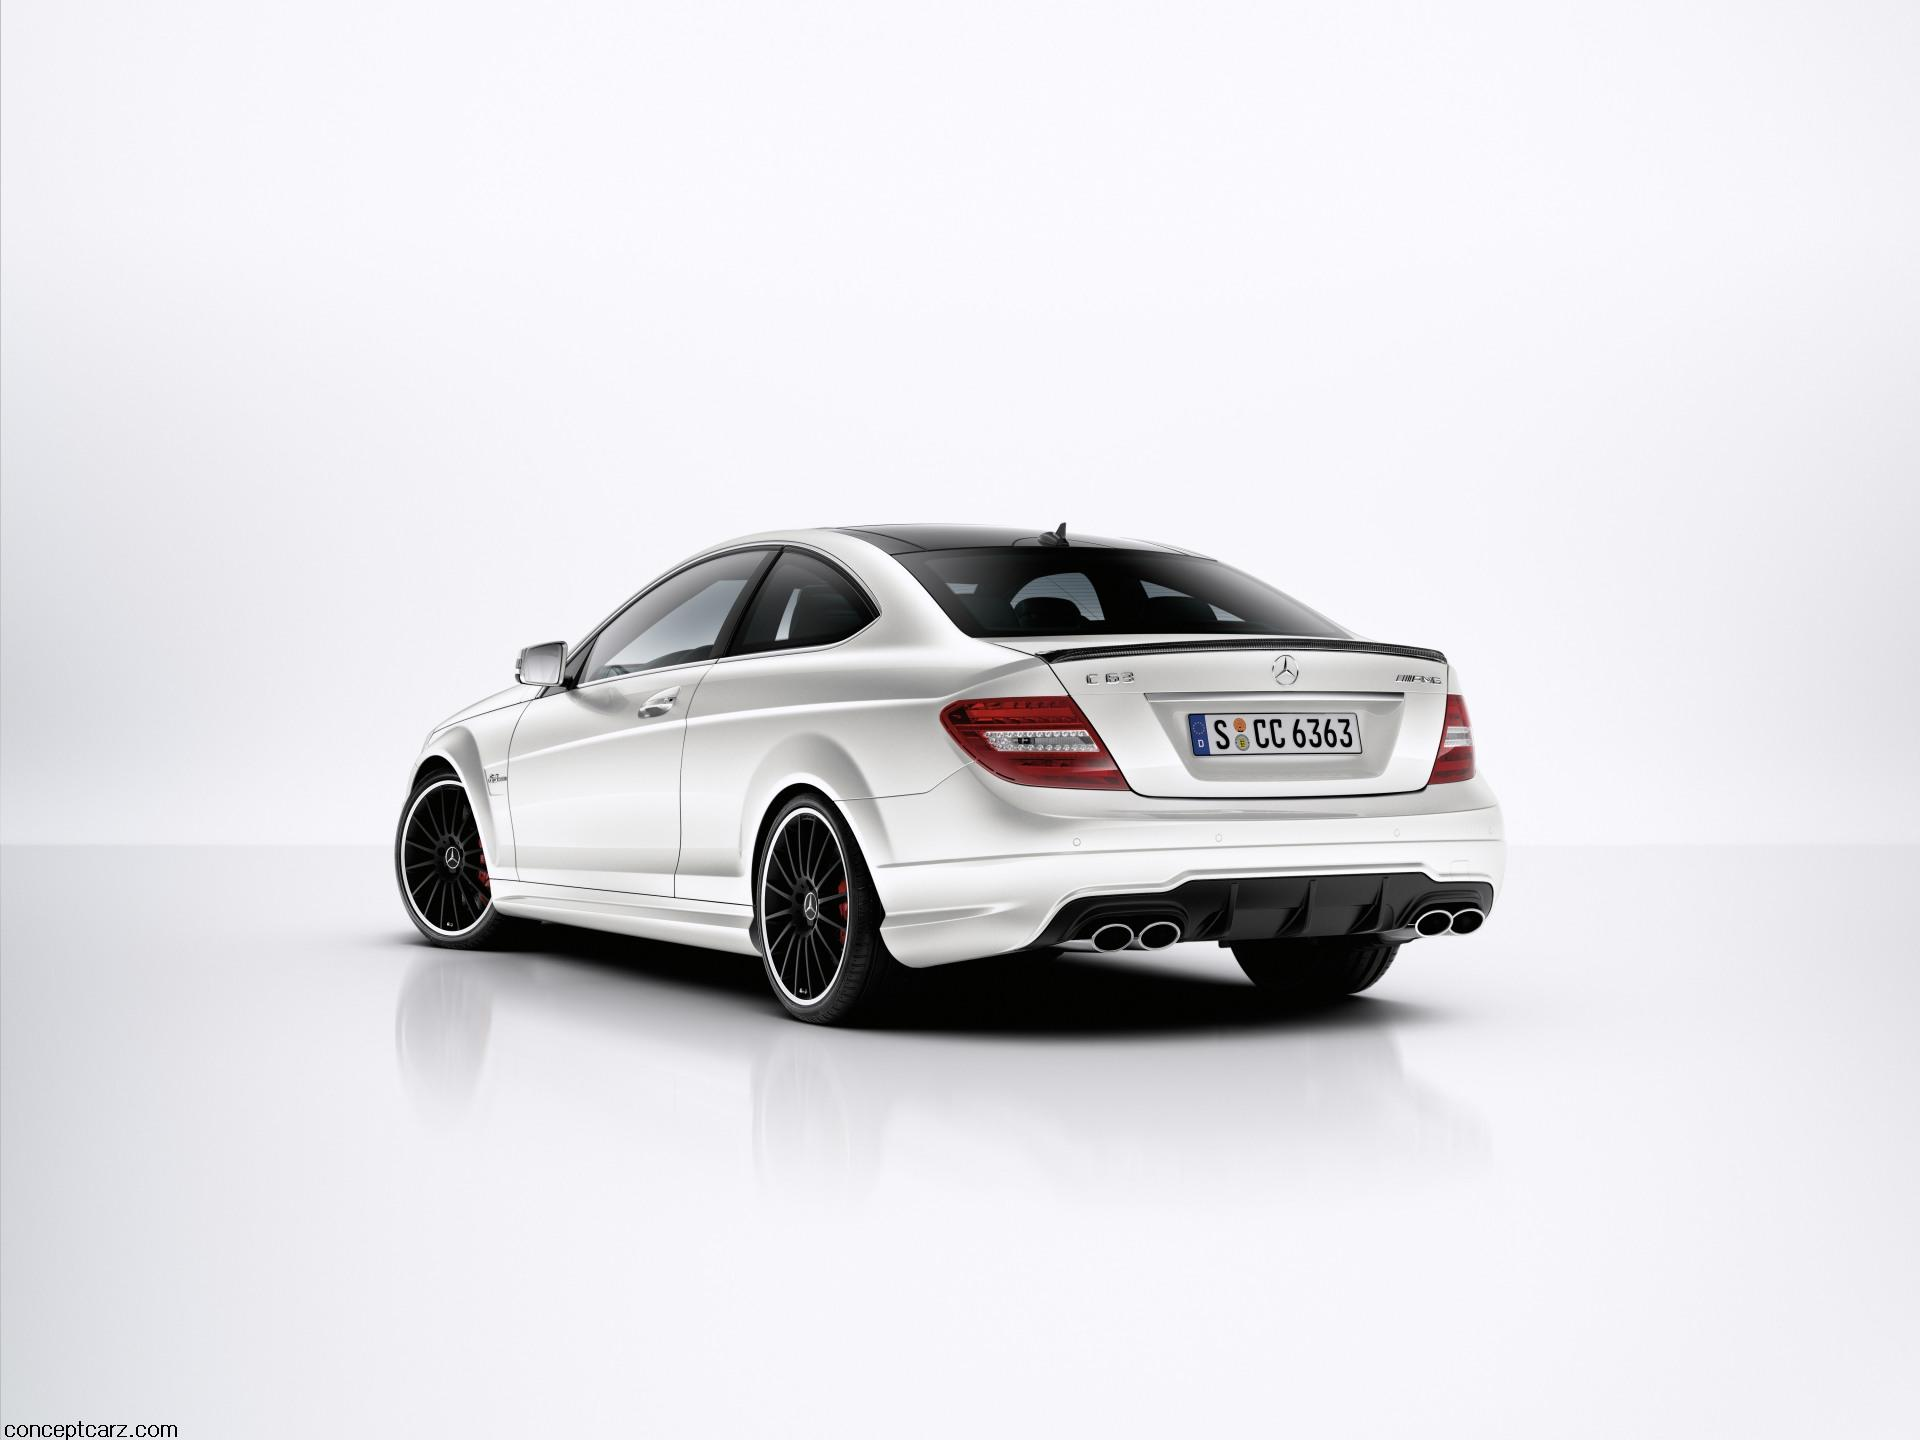 2012 Mercedes-Benz C63 AMG Coupe Image